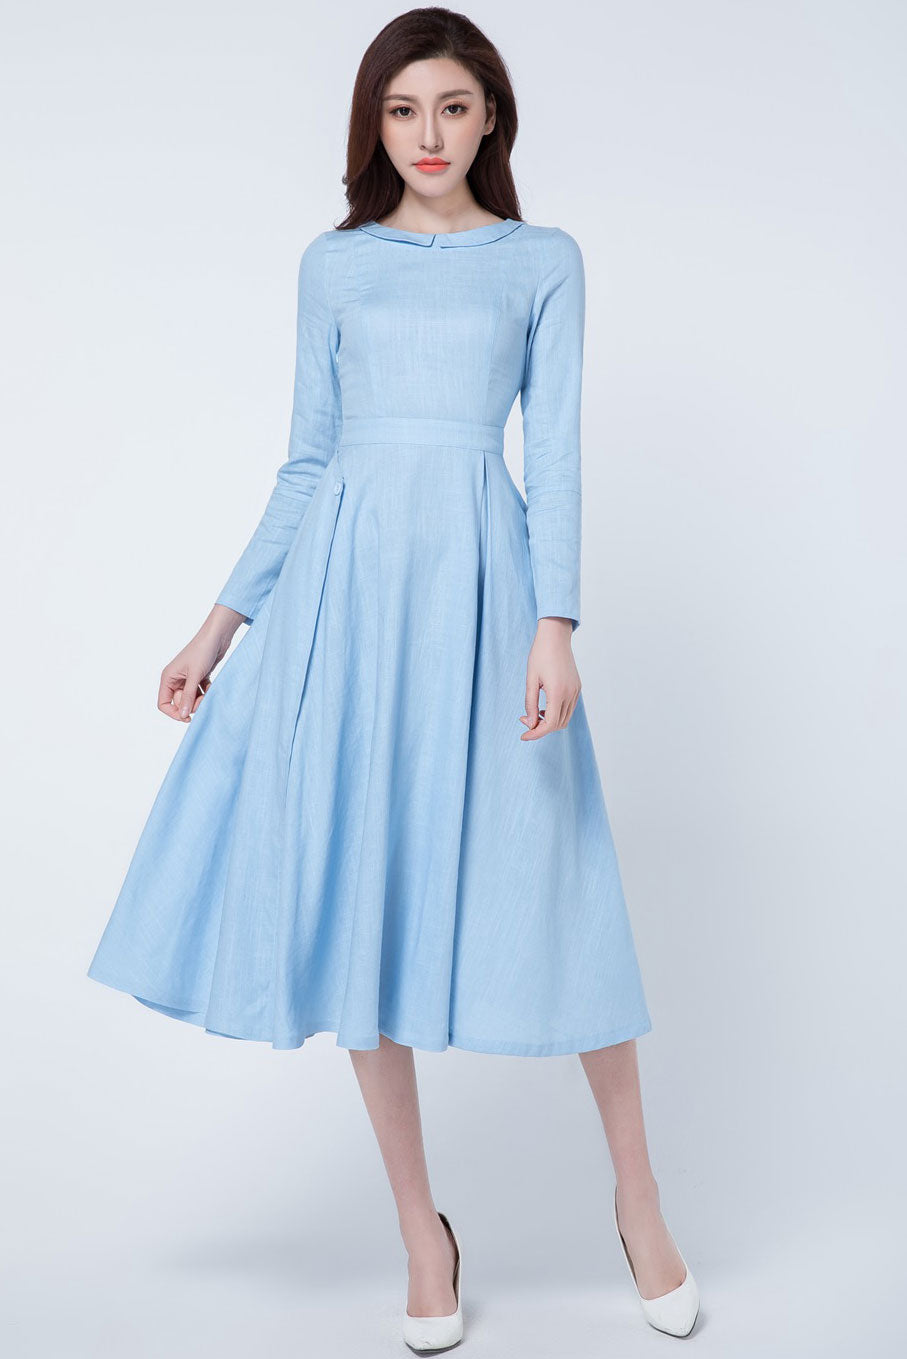 light blue Pleated party dress 1727#